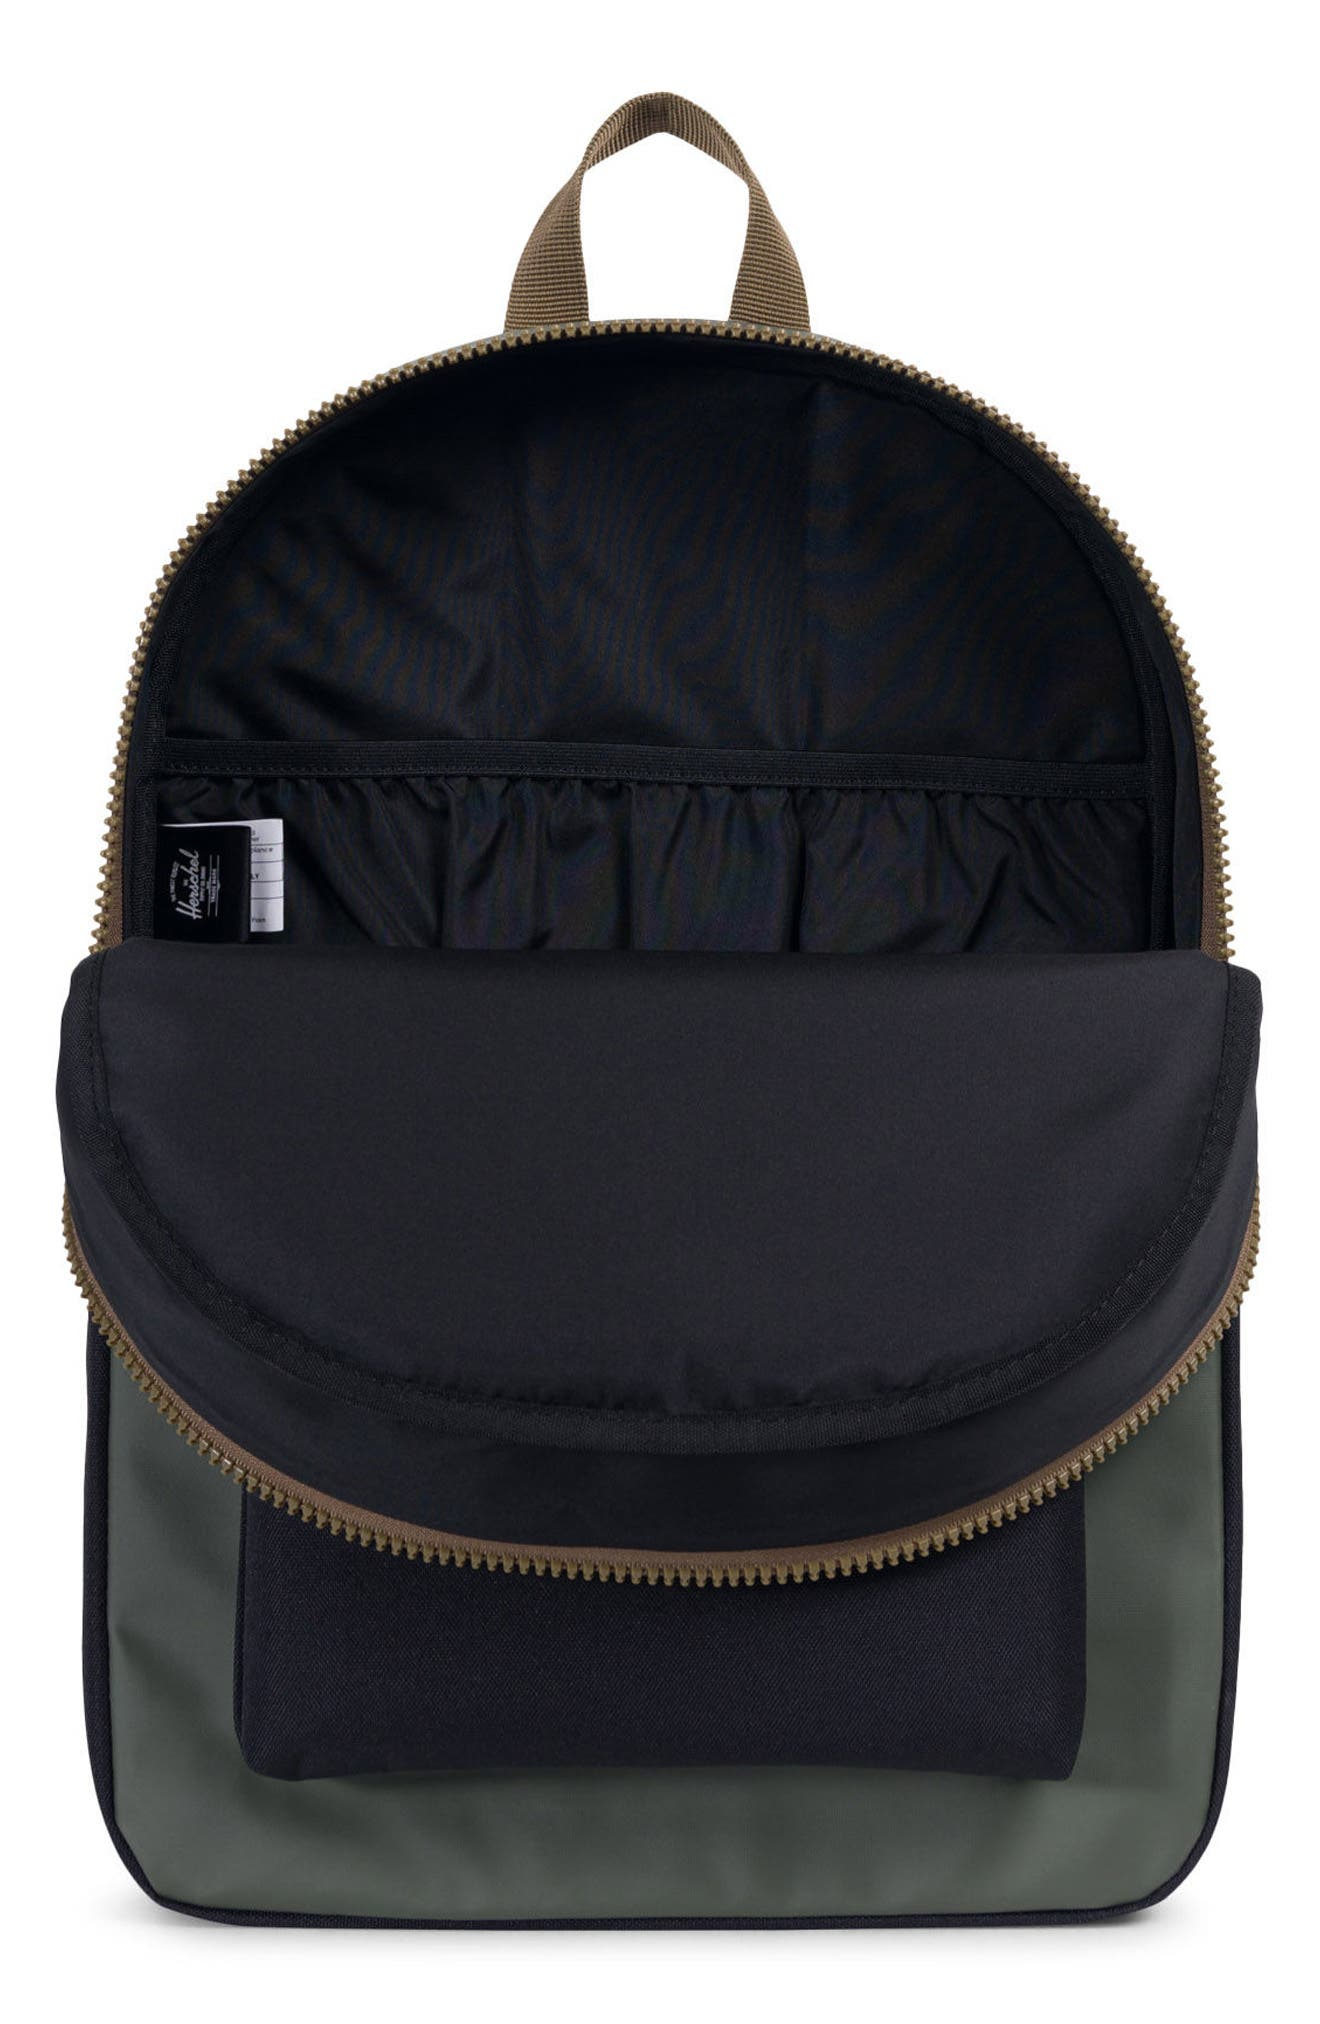 Winlaw Studio Backpack,                             Alternate thumbnail 3, color,                             300